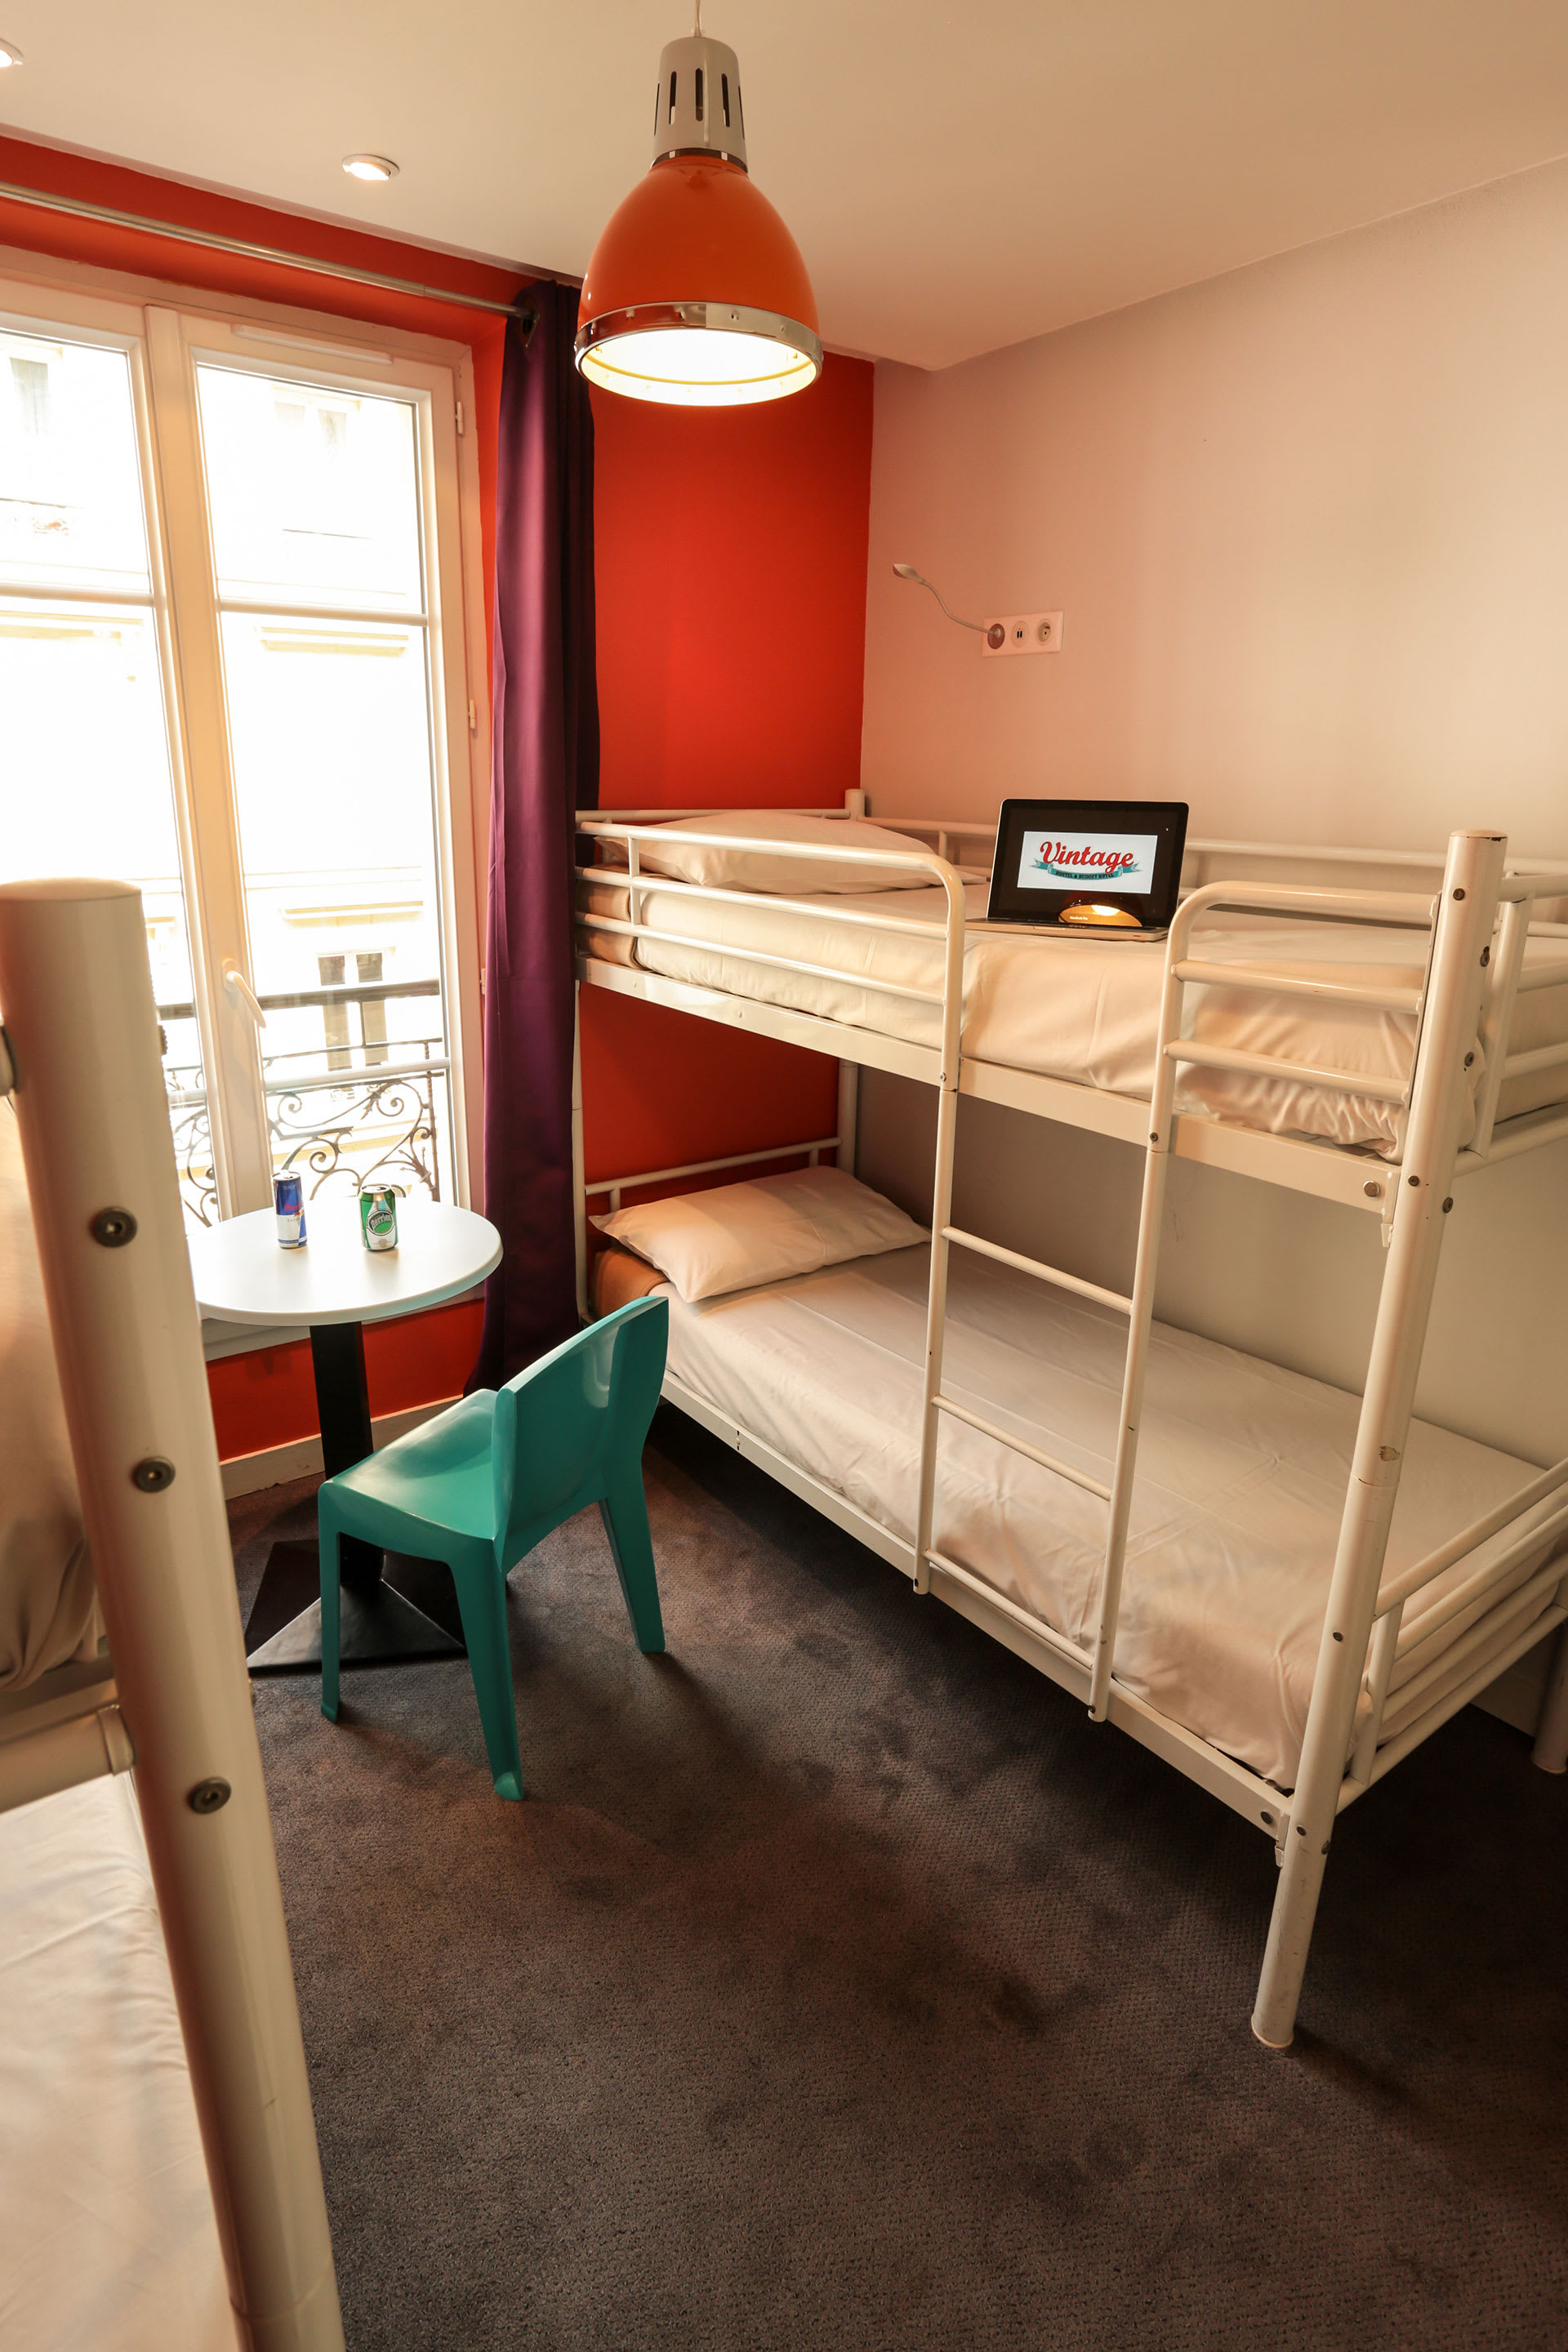 HOSTEL - Vintage Paris Gare du Nord by Hiphophostels